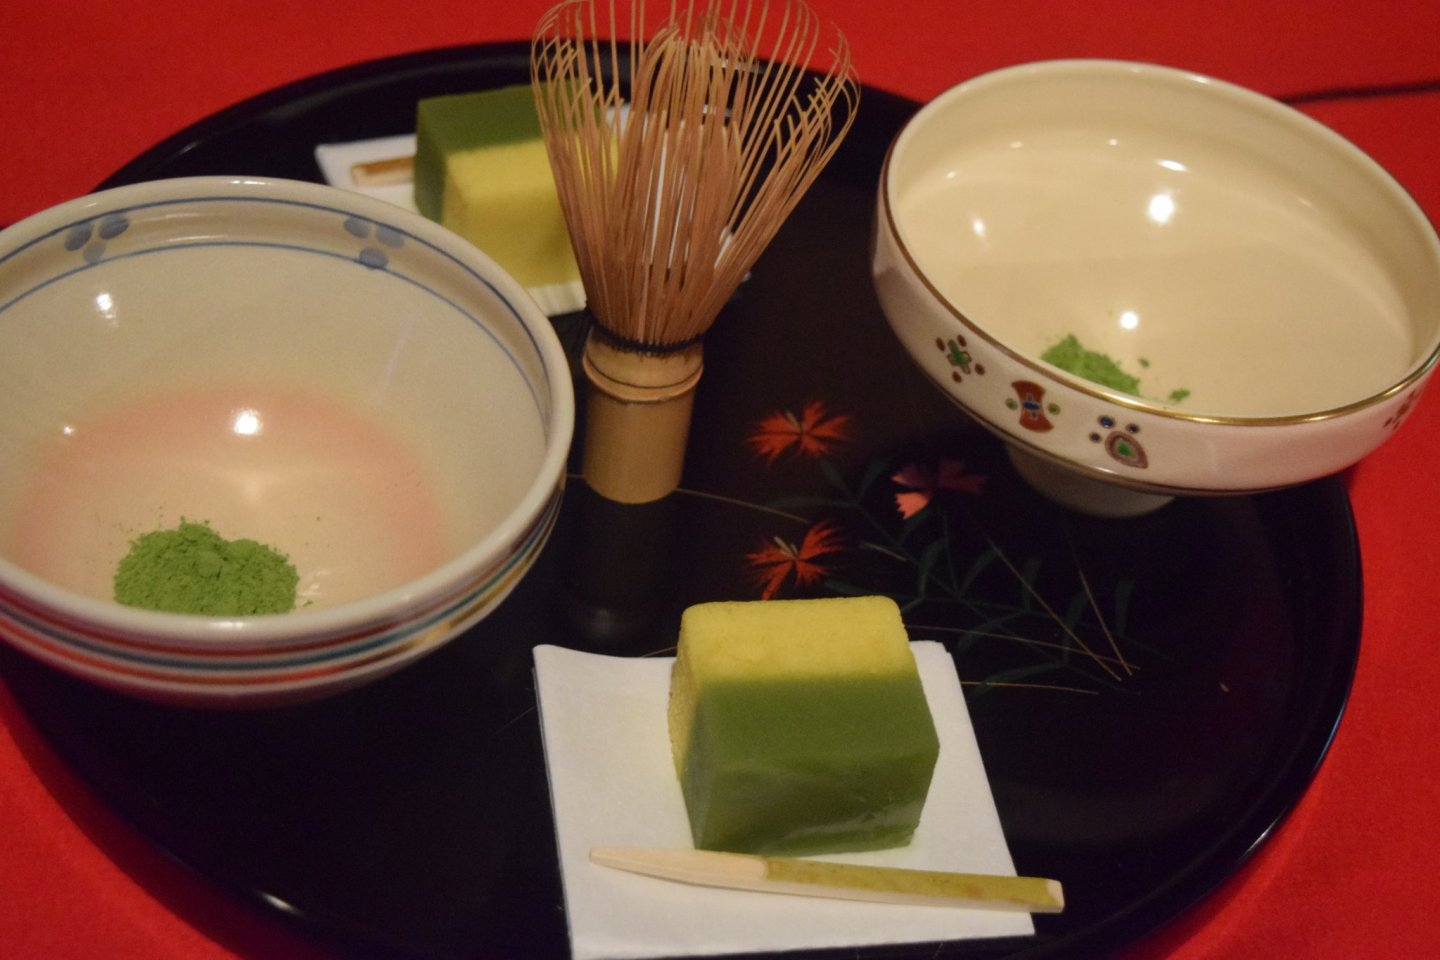 From the beginner\'s workshop, where you could learn how to whisk your own cup of matcha